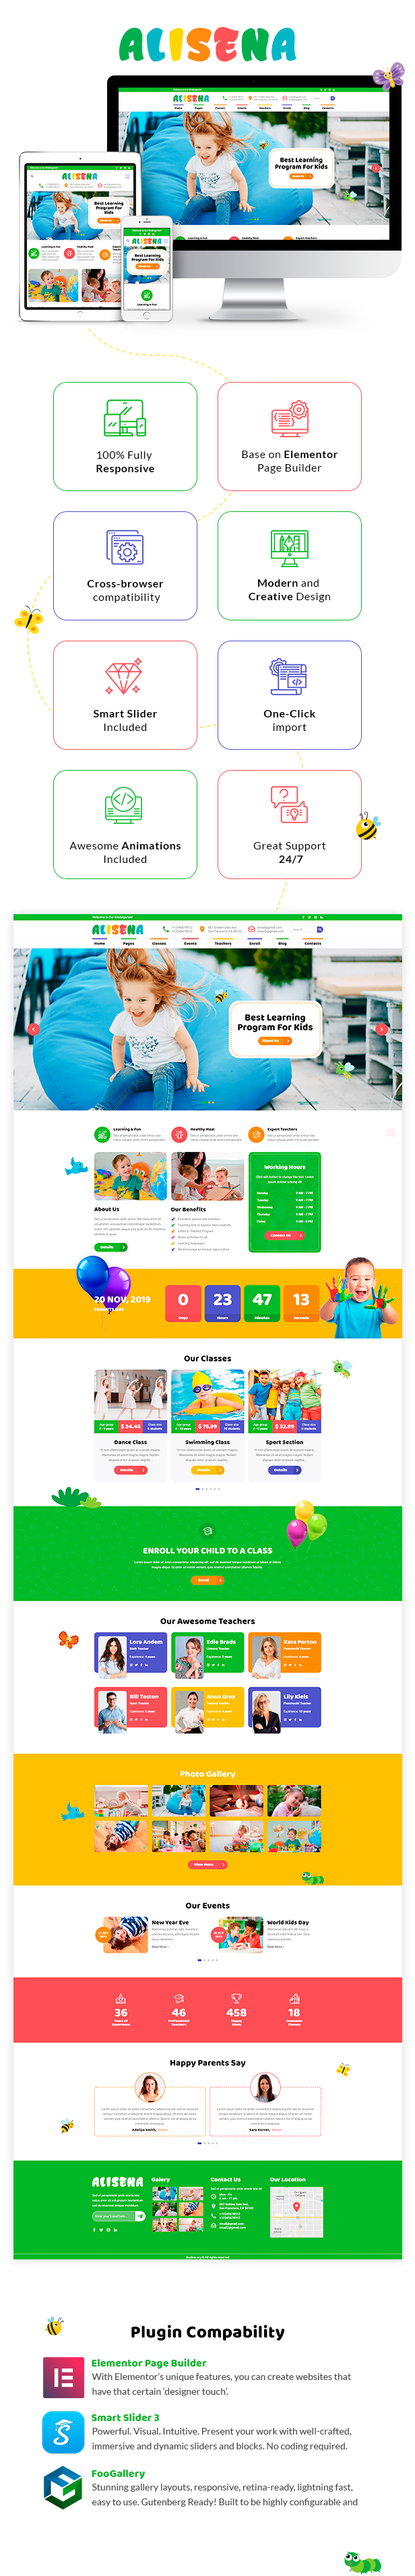 Alisena - Kindergarten & Preschool WordPress Theme - 1